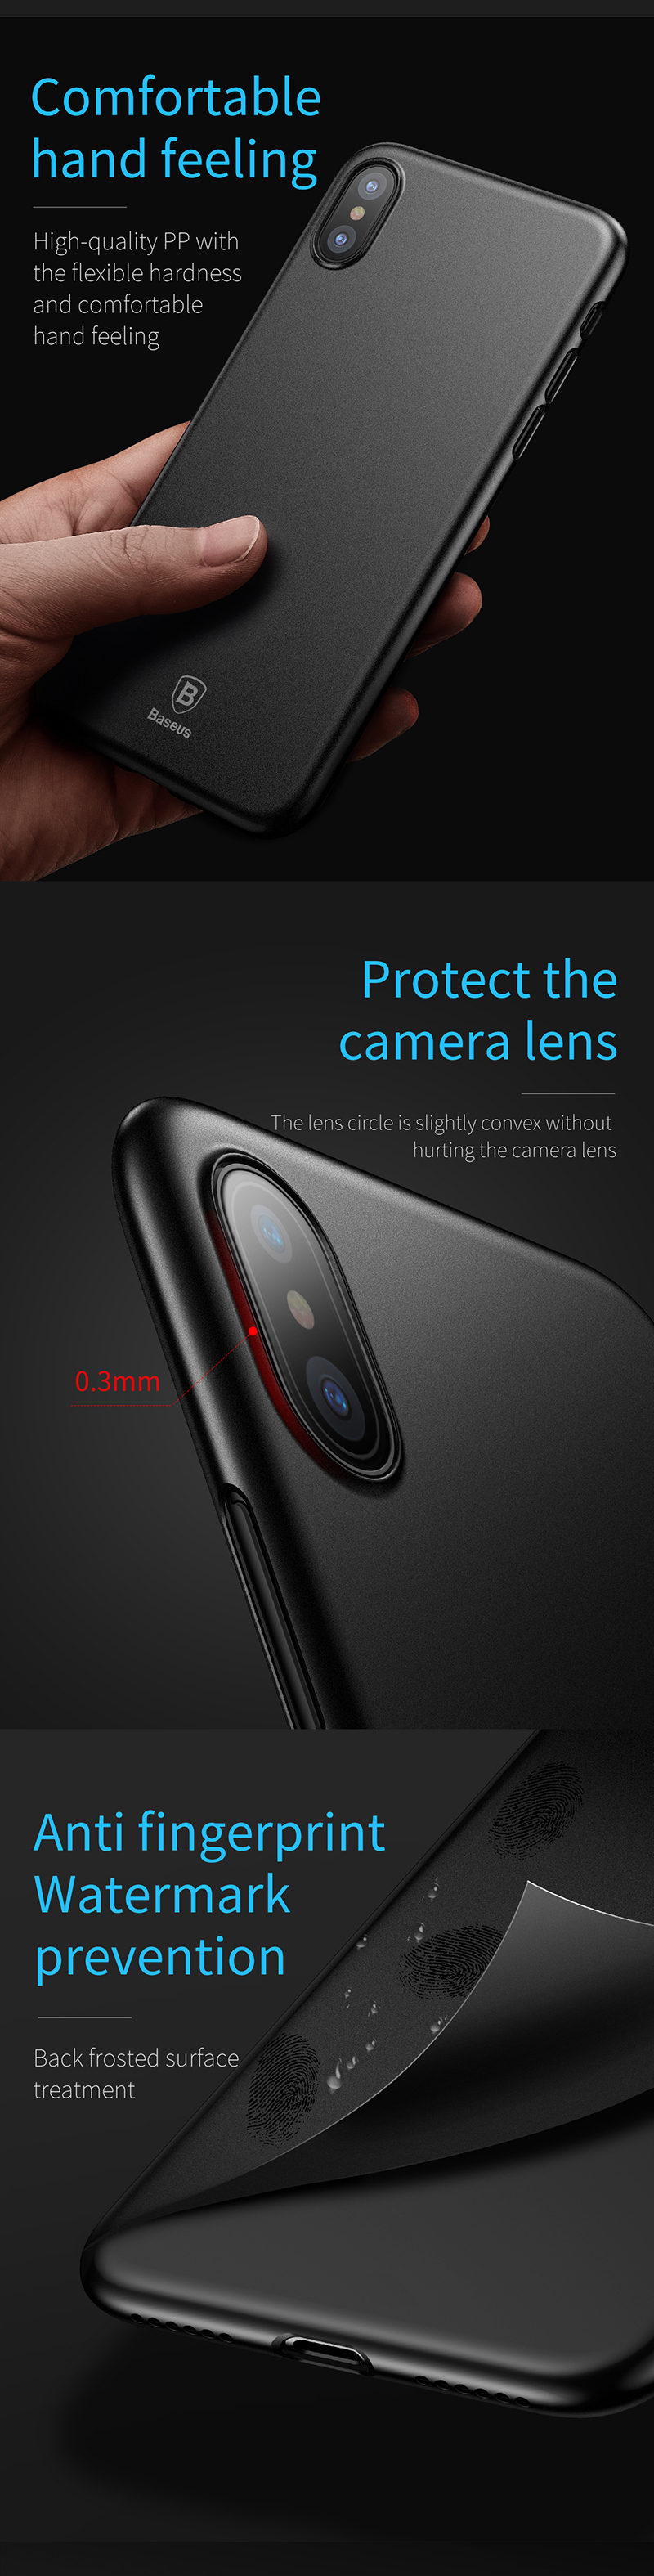 Baseus PP 0.45mm Ultra Thin Anti Fingerprint Case Cover for iPhone X